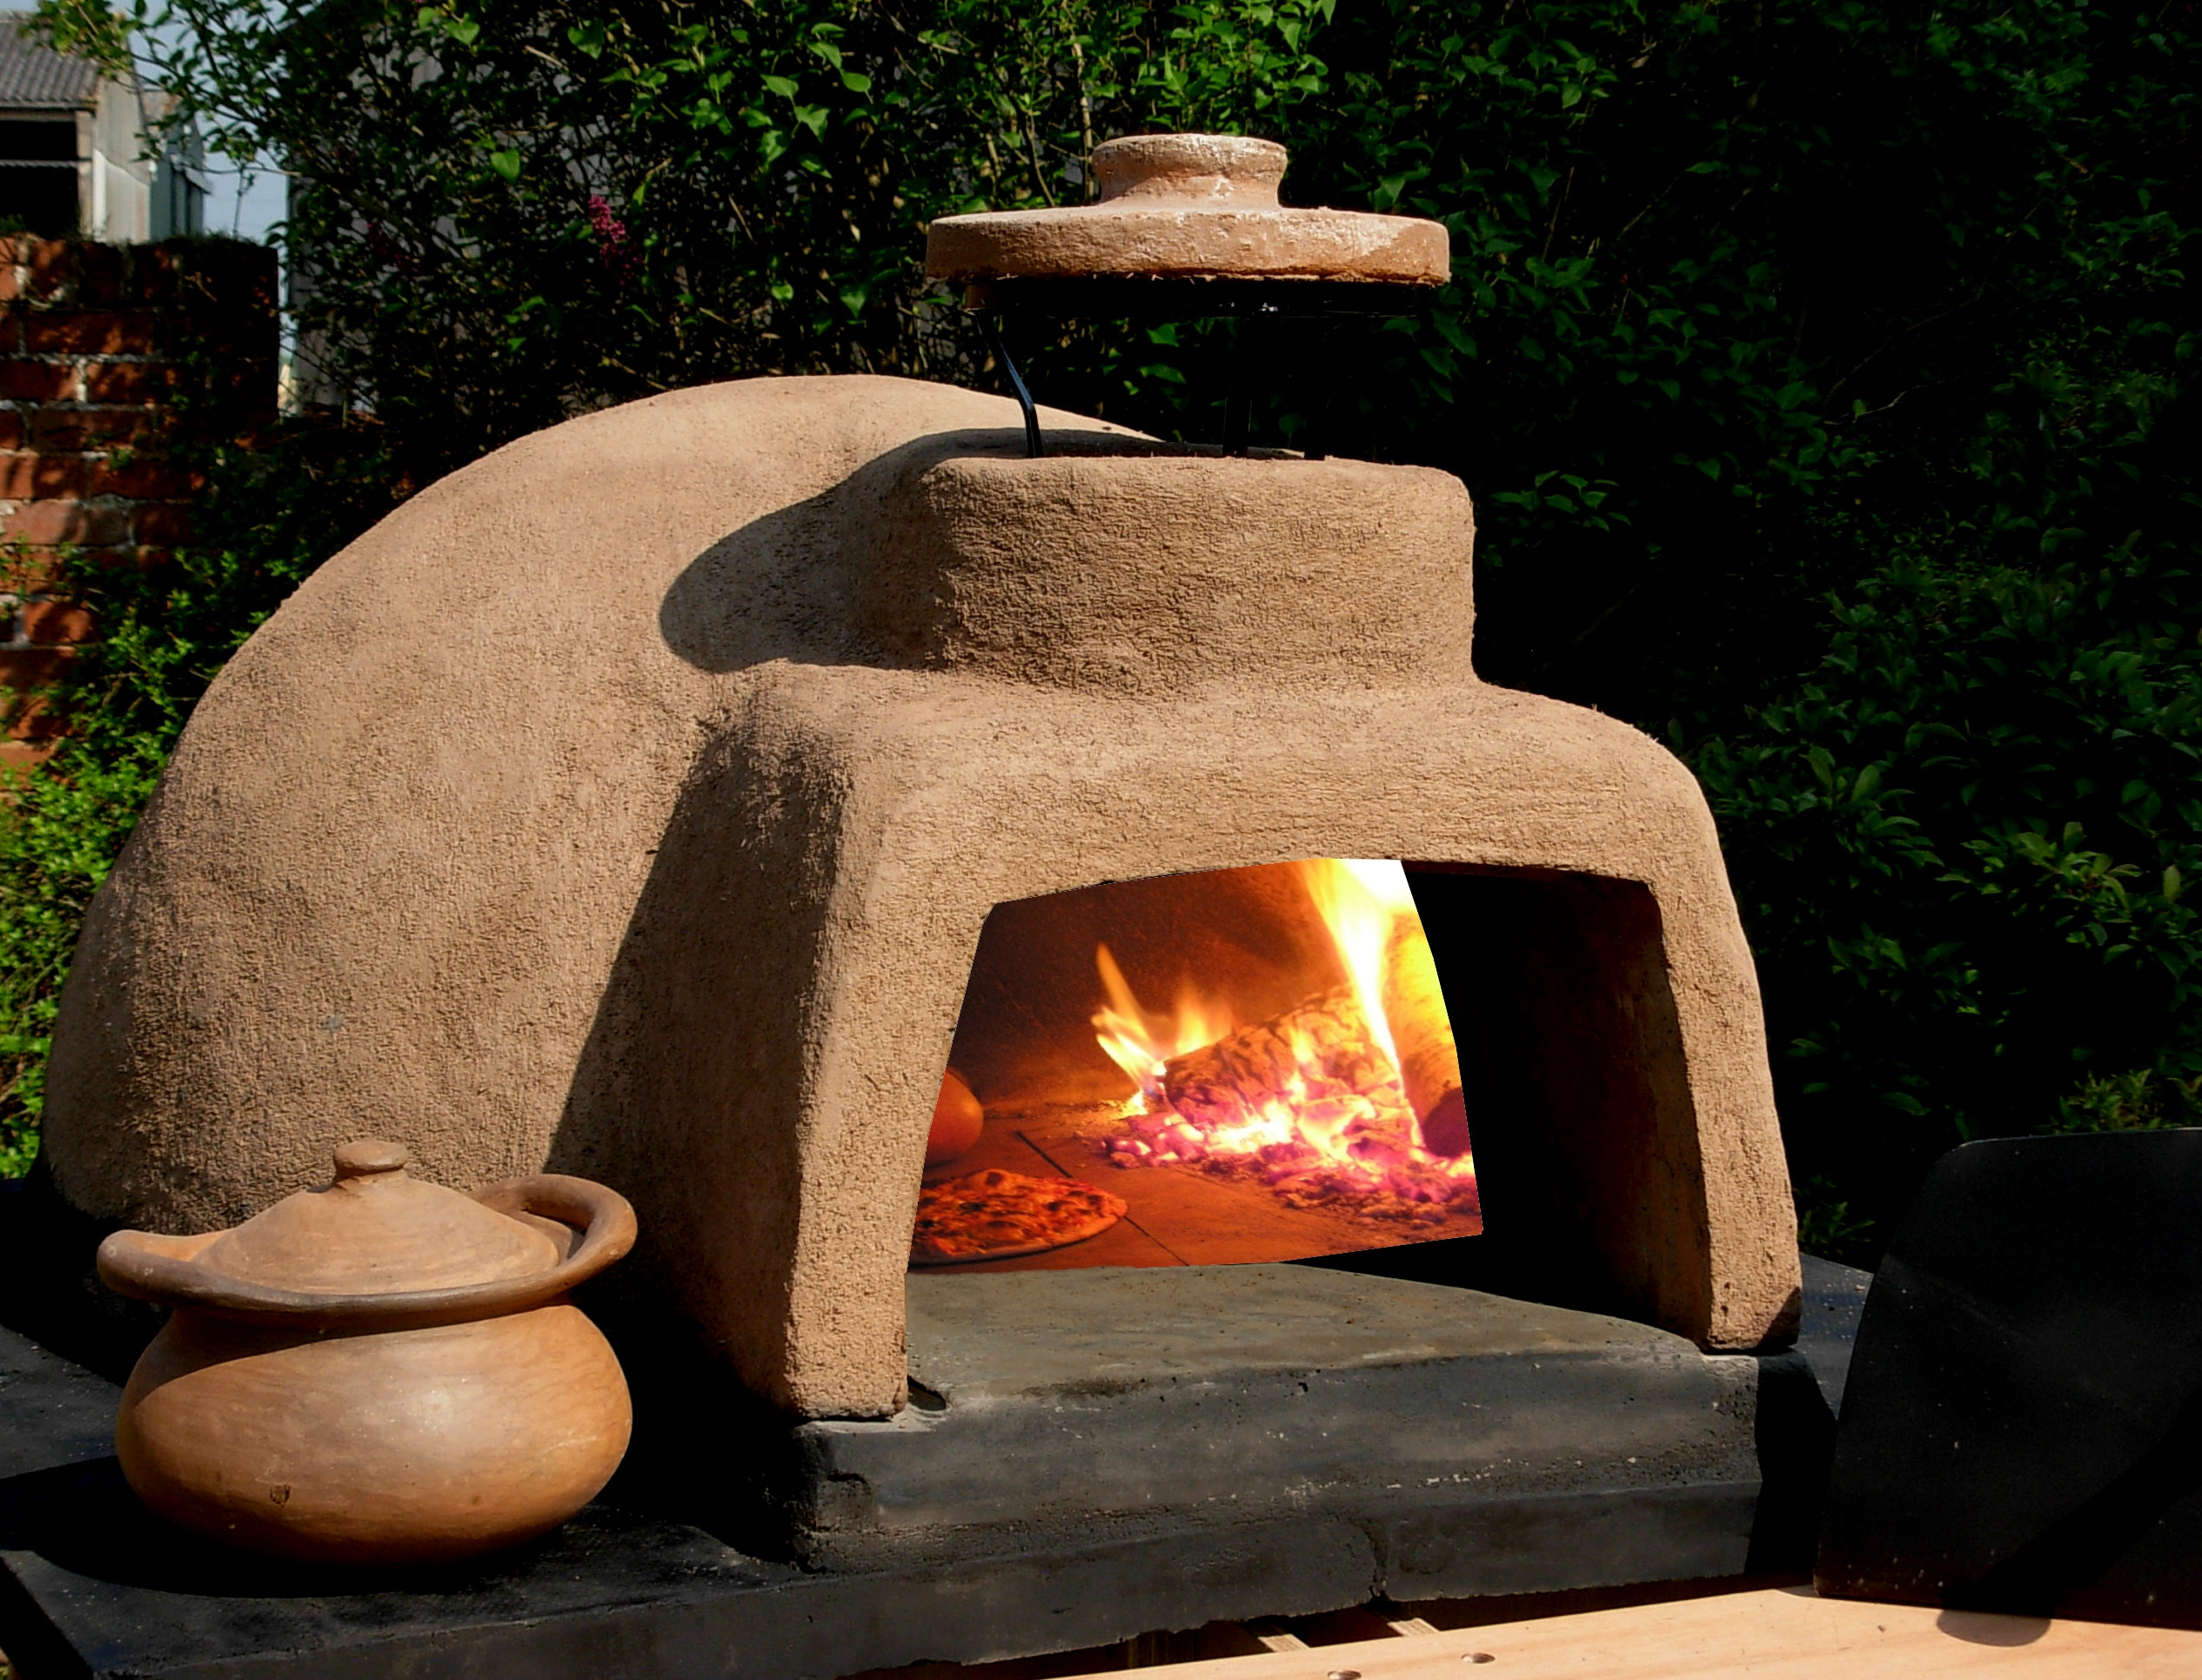 Best ideas about DIY Wood Fired Oven . Save or Pin 15 DIY Pizza Oven Plans For Outdoors Backing – The Self Now.